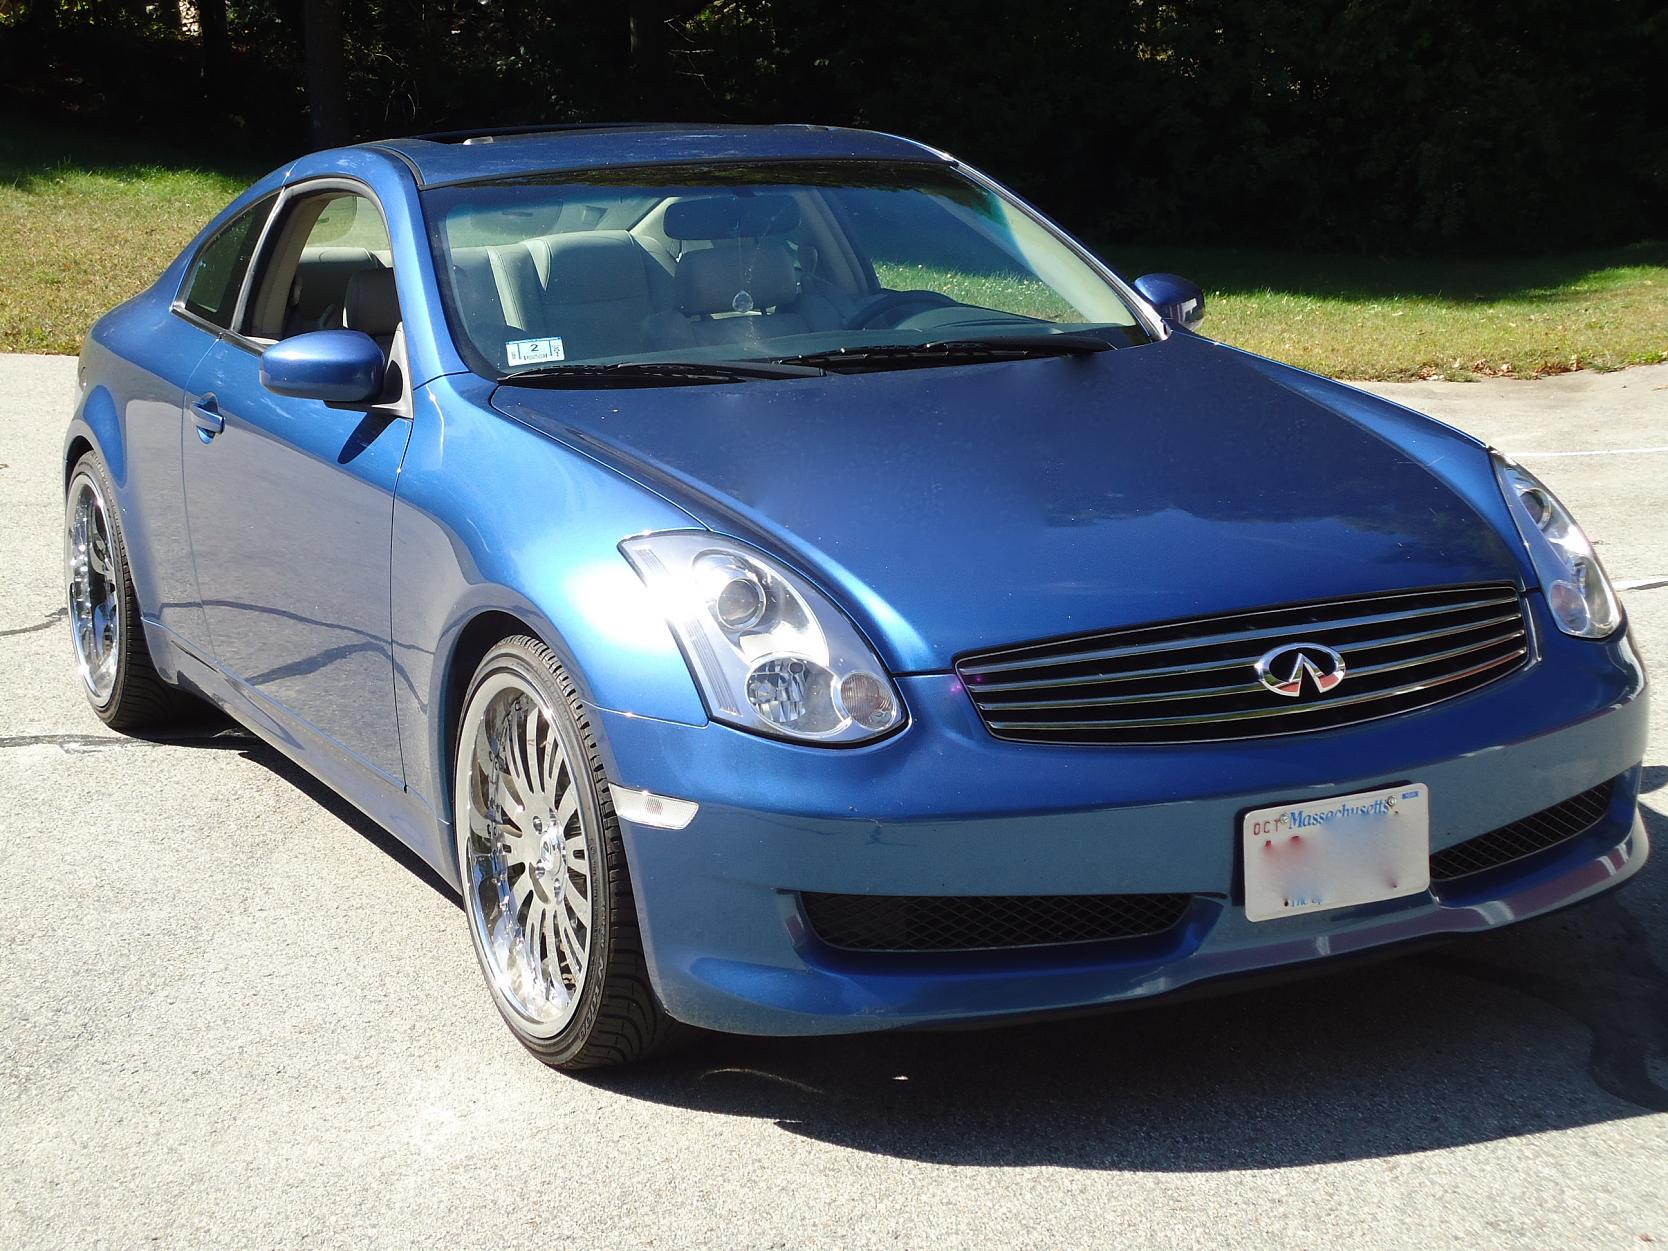 FS 2006 Athens blue G35 Coupe 6spd Low Miles  G35Driver  Infiniti G35  G37 Forum Discussion